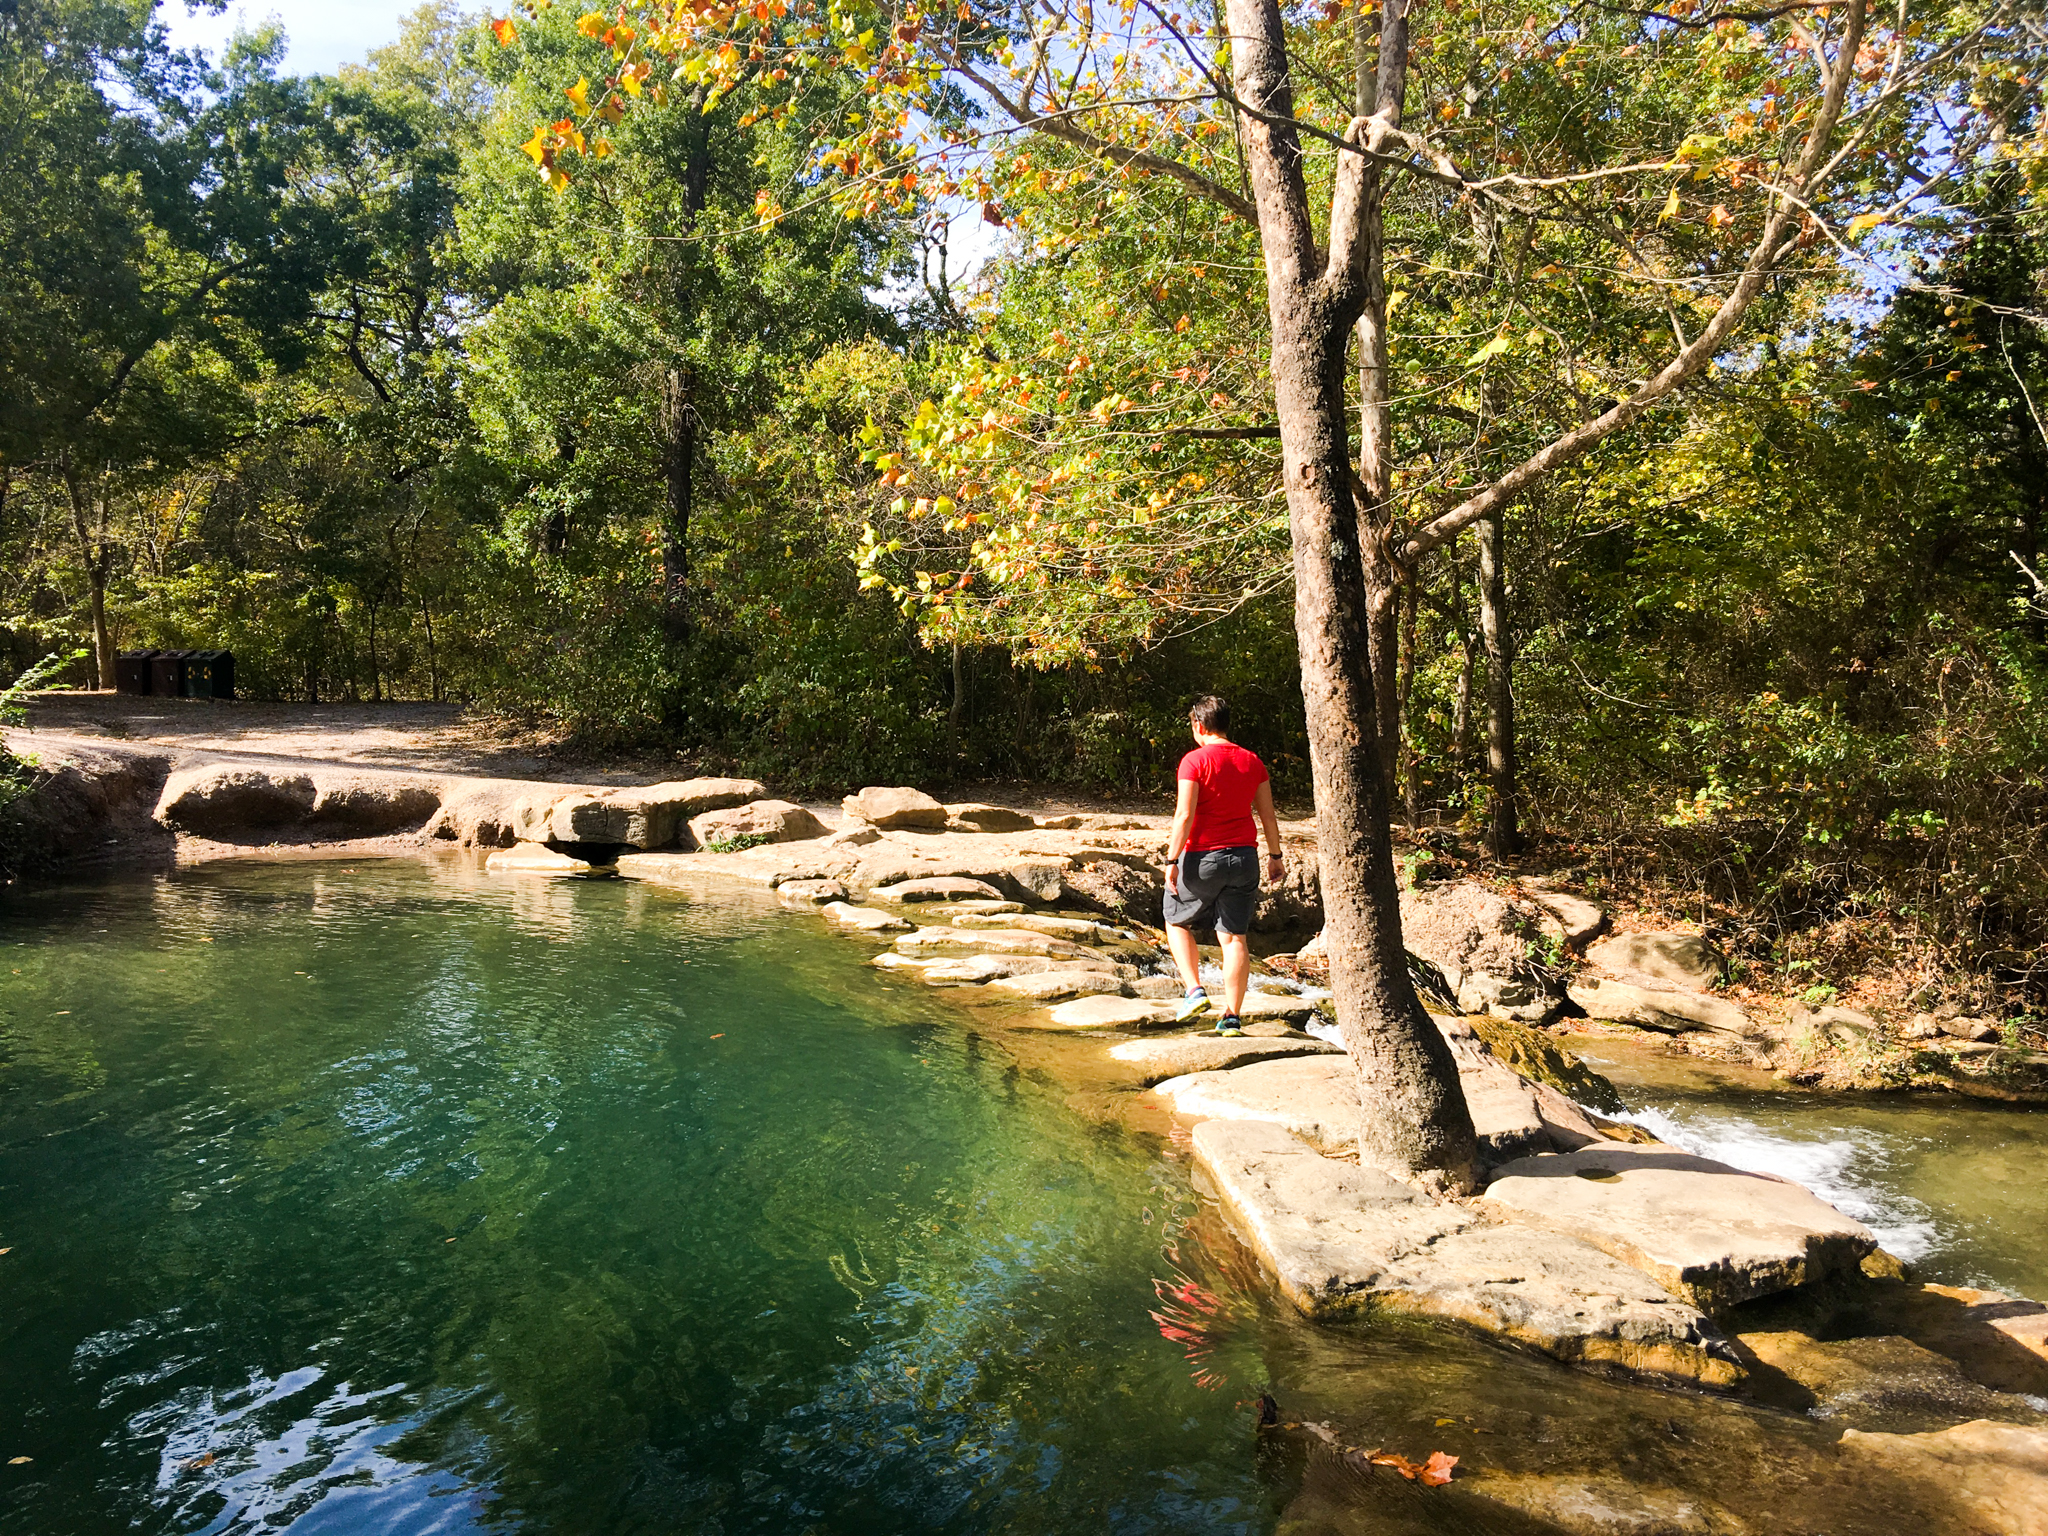 Pool at Platt National Park